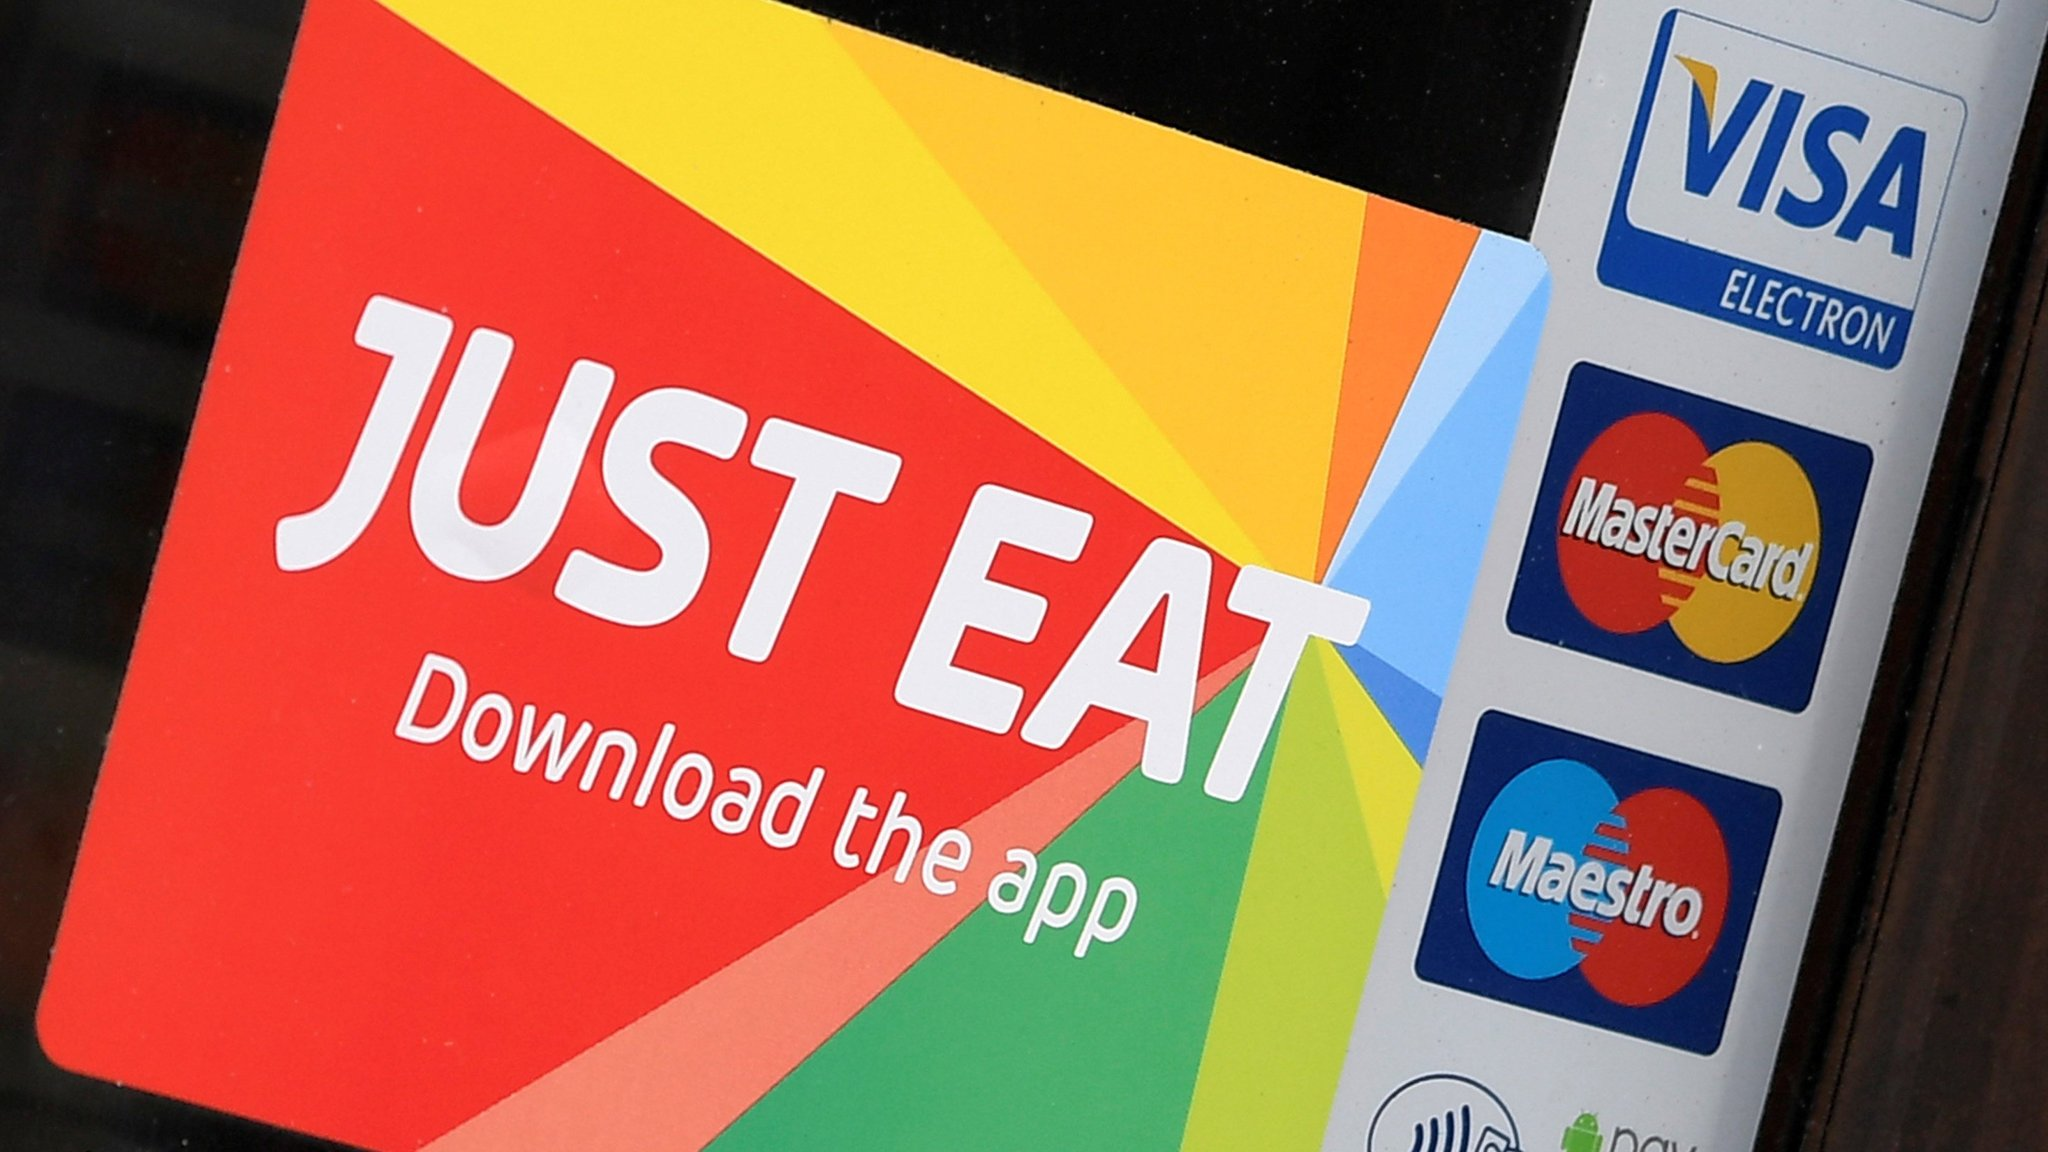 Uk Regulator Launches 11th Hour Review Of Just Eat Takeaway